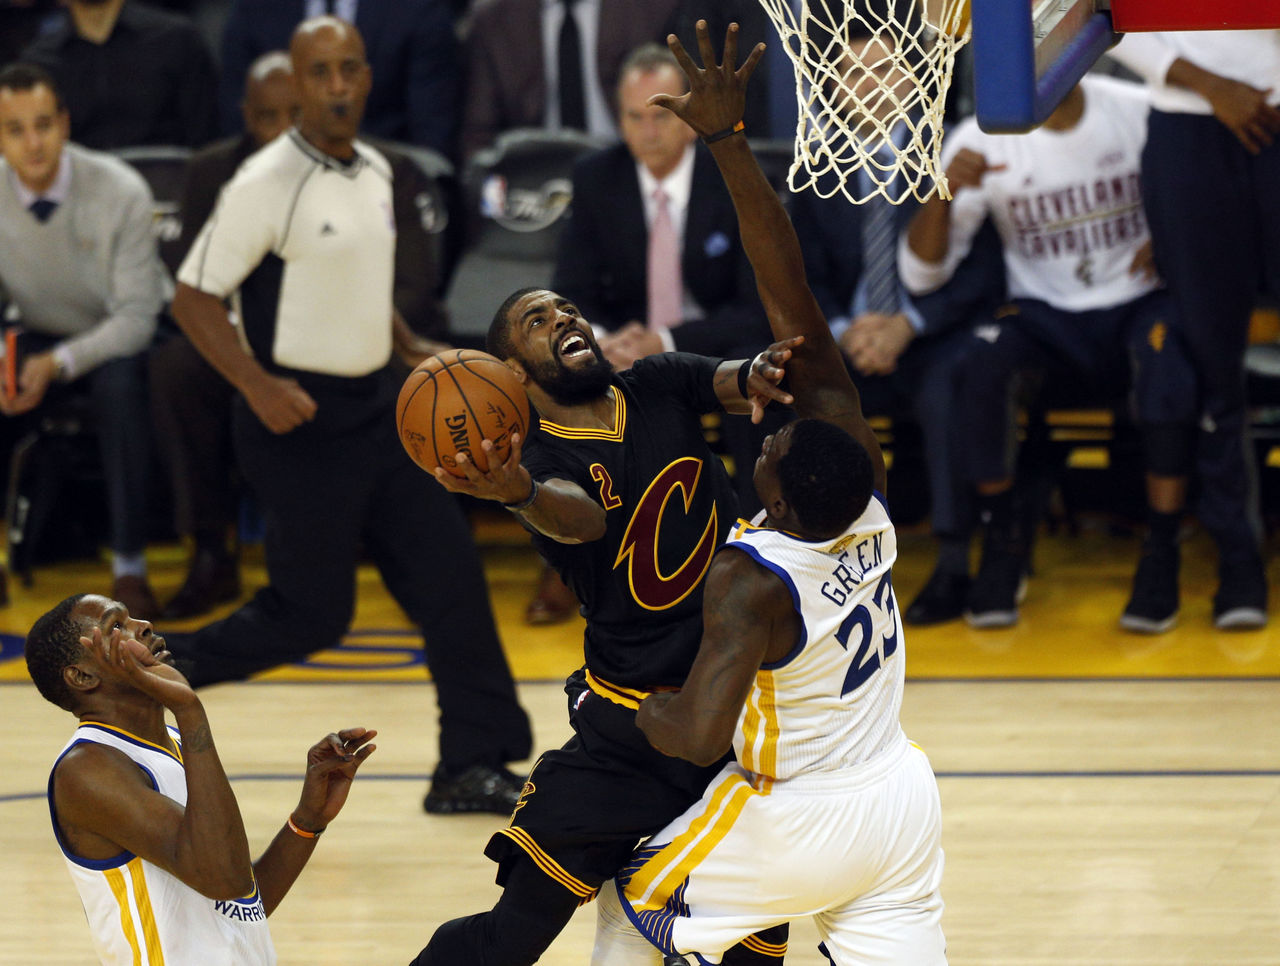 Cropped 2017 06 13t014336z 2018916743 nocid rtrmadp 3 nba finals cleveland cavaliers at golden state warriors